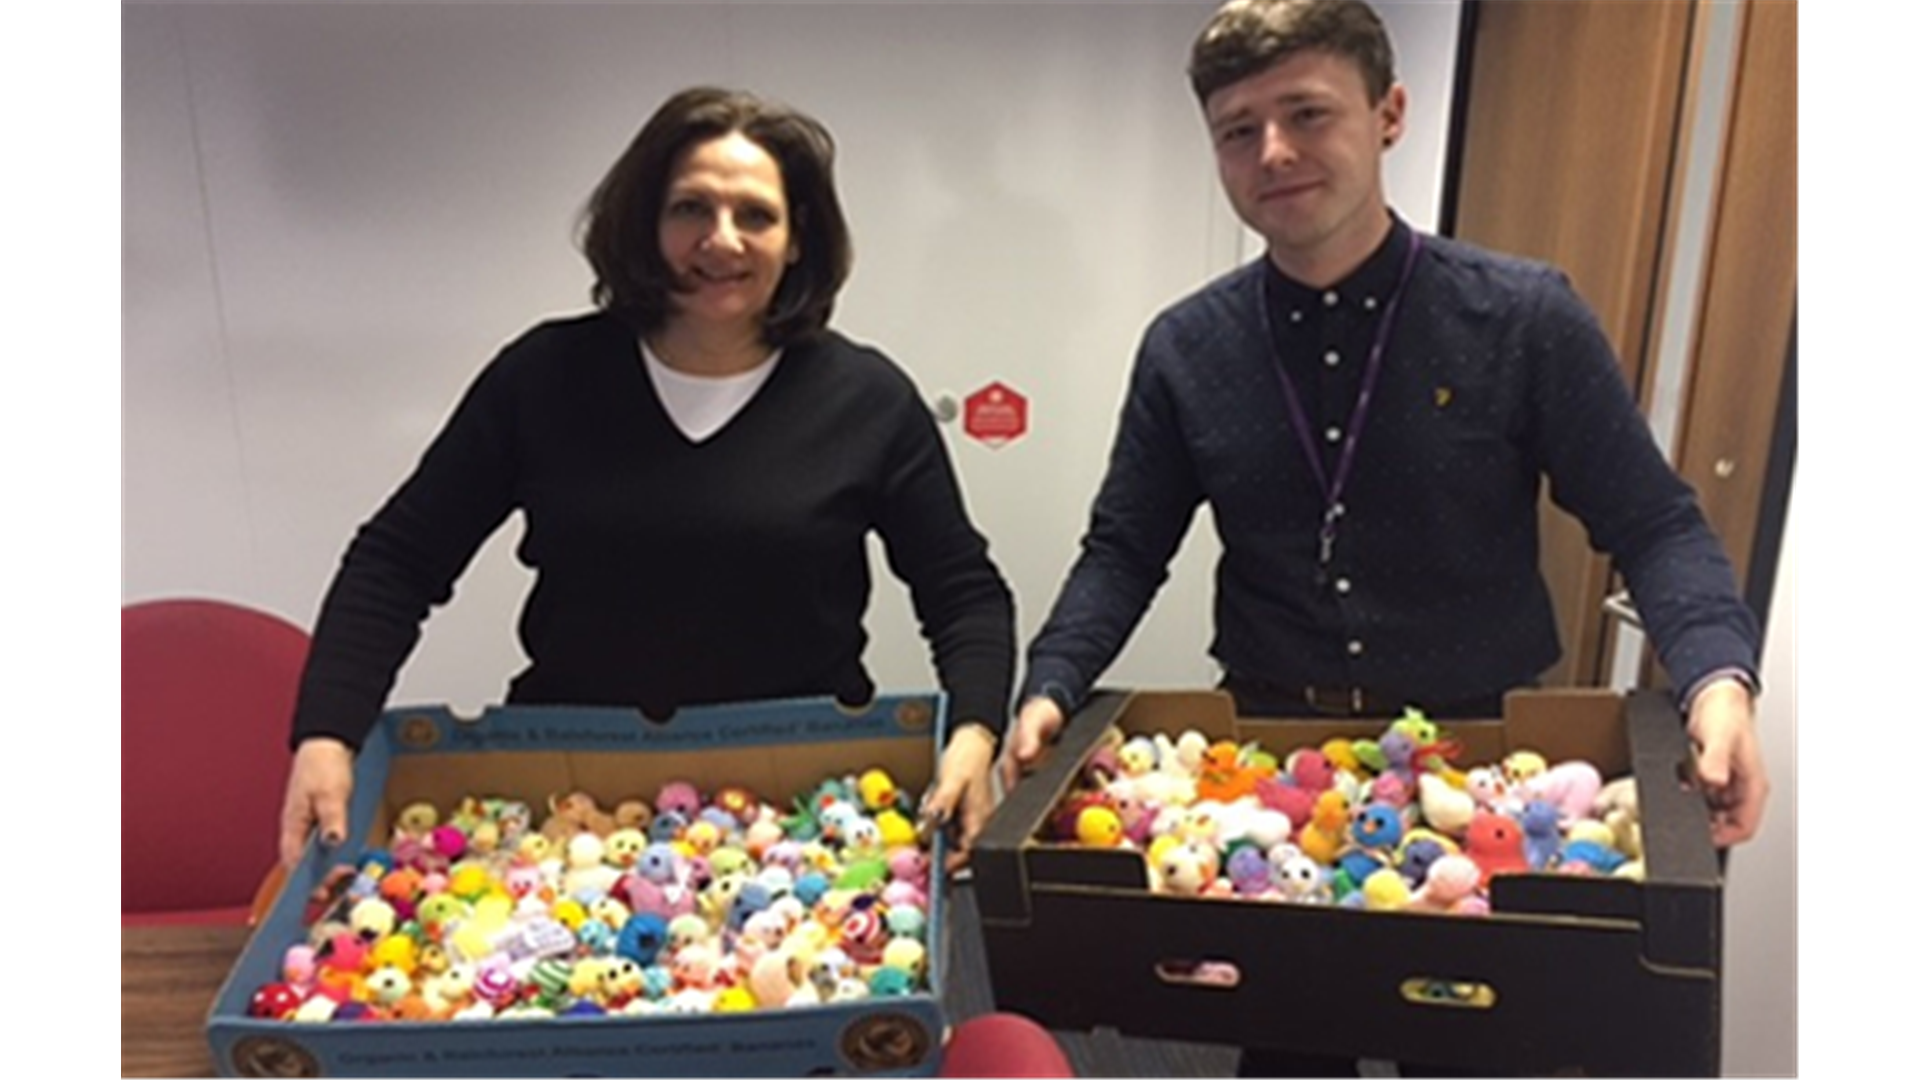 Eggseptional Egg Donations for Francis House's Chicks